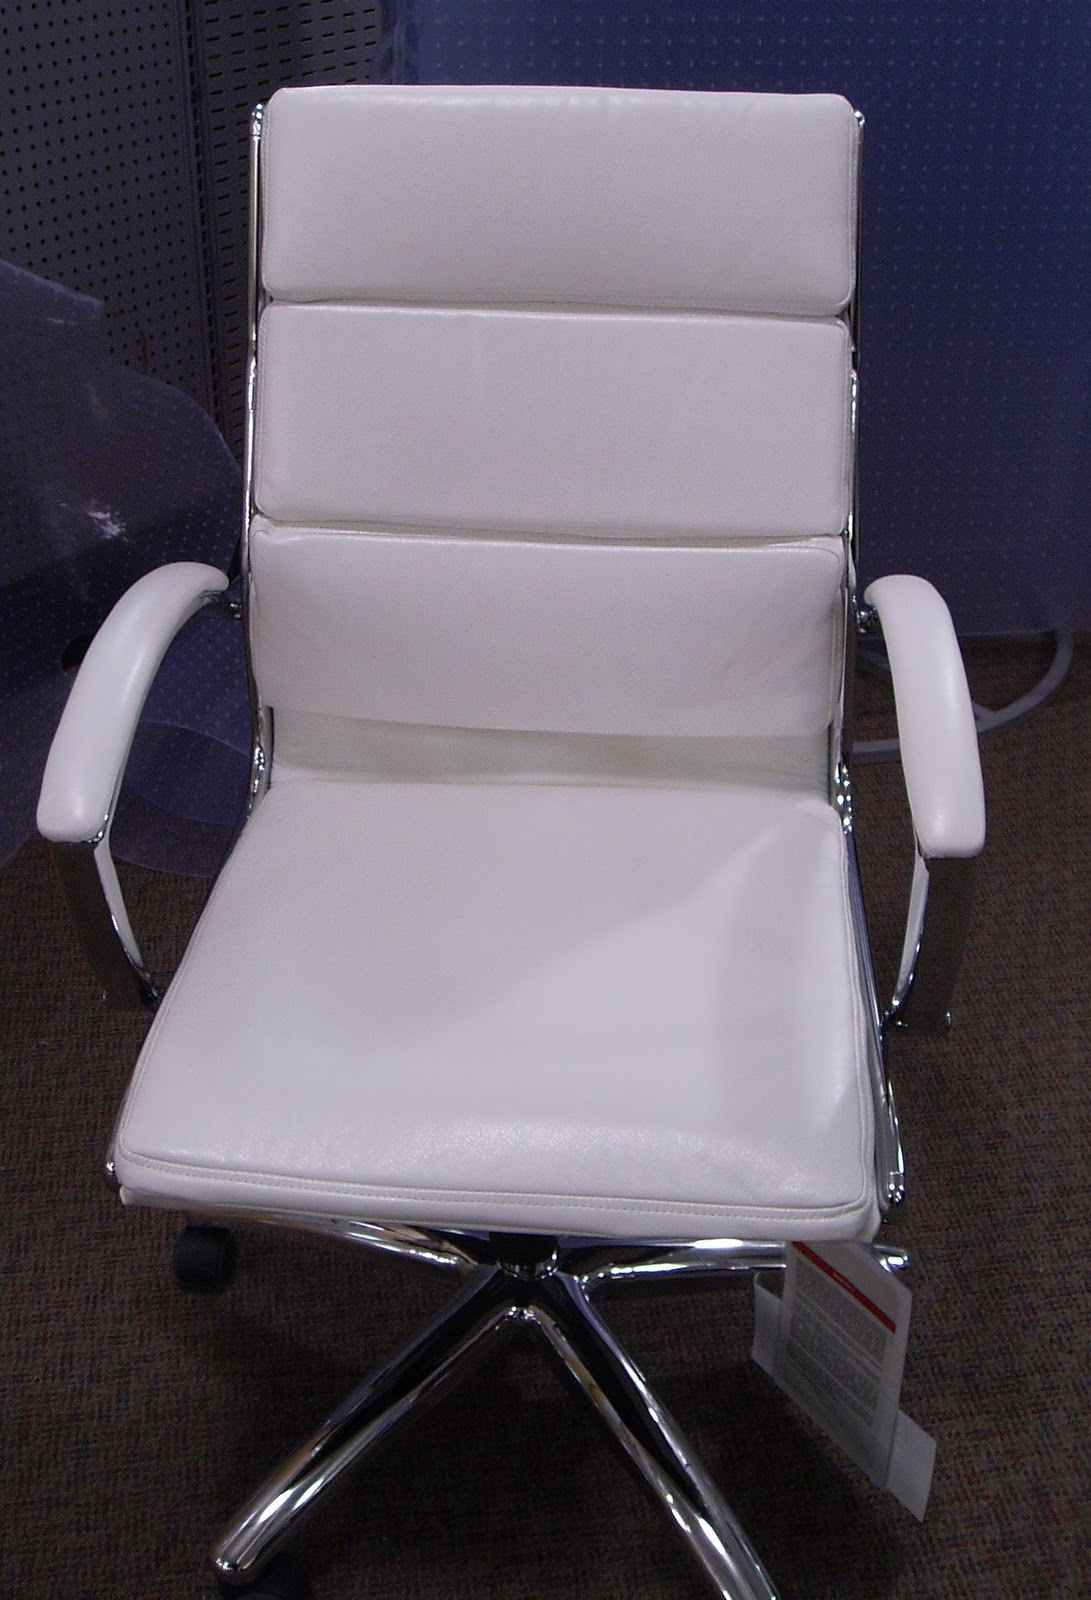 Staples Task Chair Canada Cover Rentals Waco Creative Influences Chairs